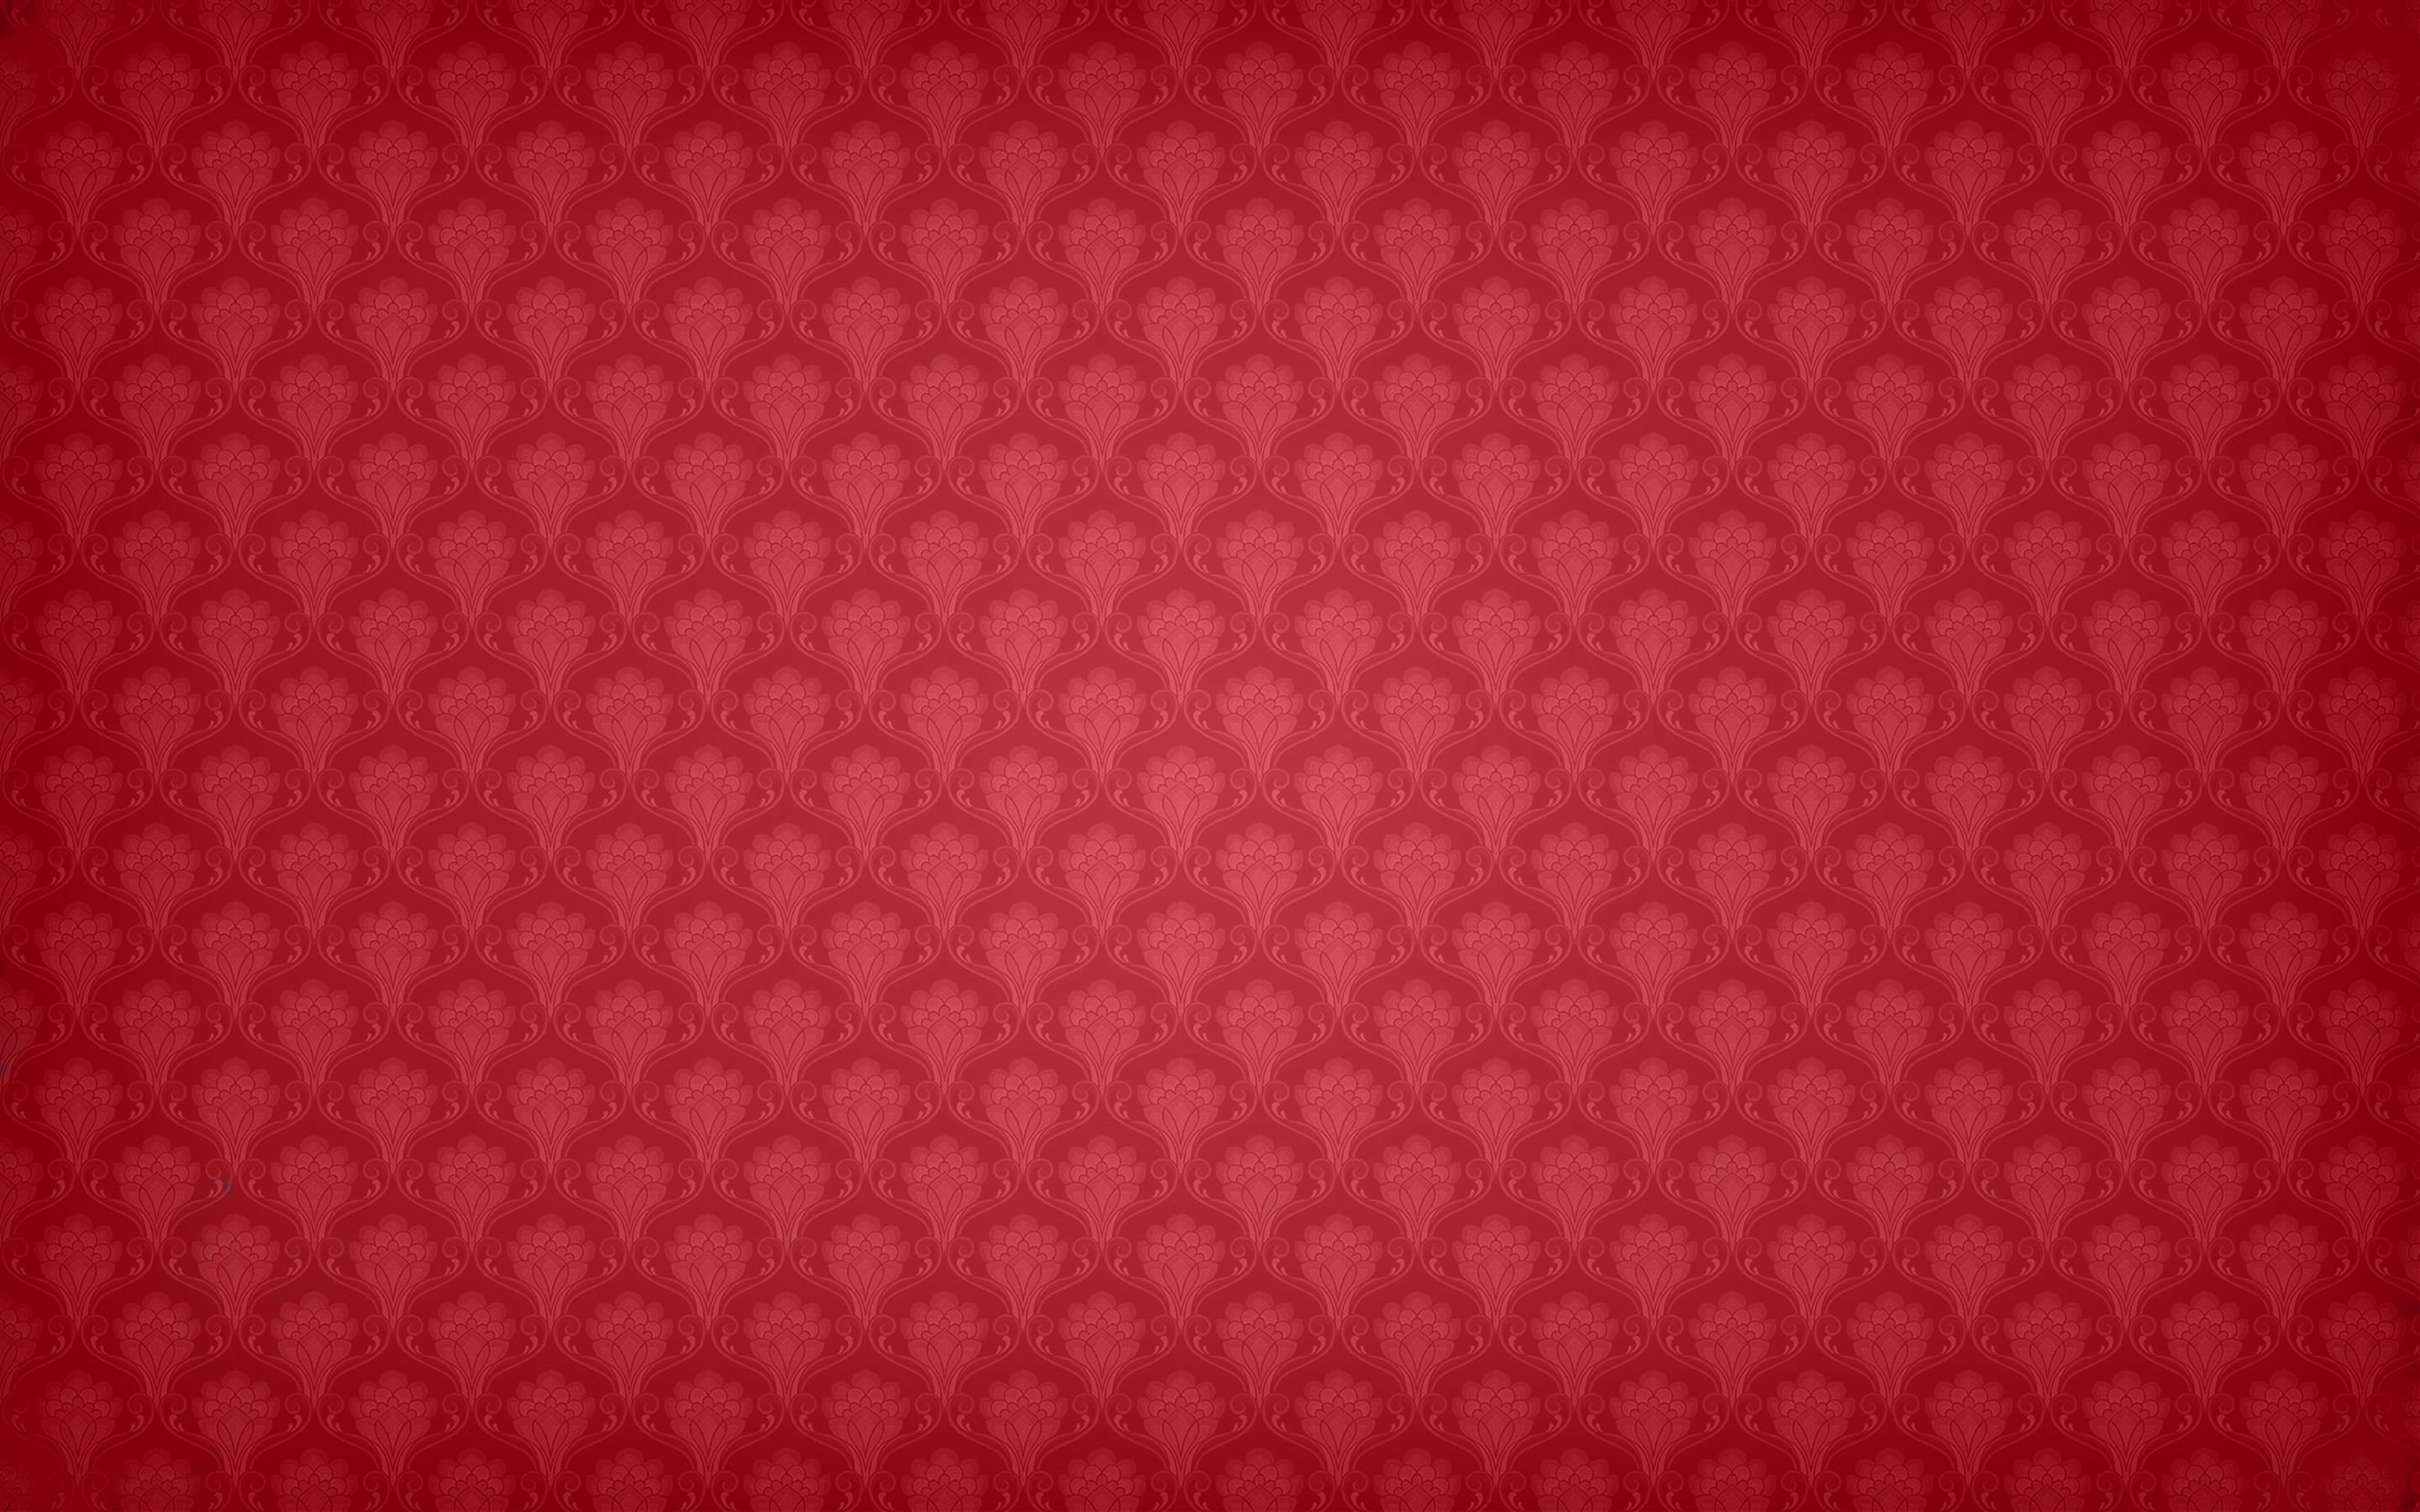 15+ Red Floral Wallpapers | Floral Patterns | FreeCreatives